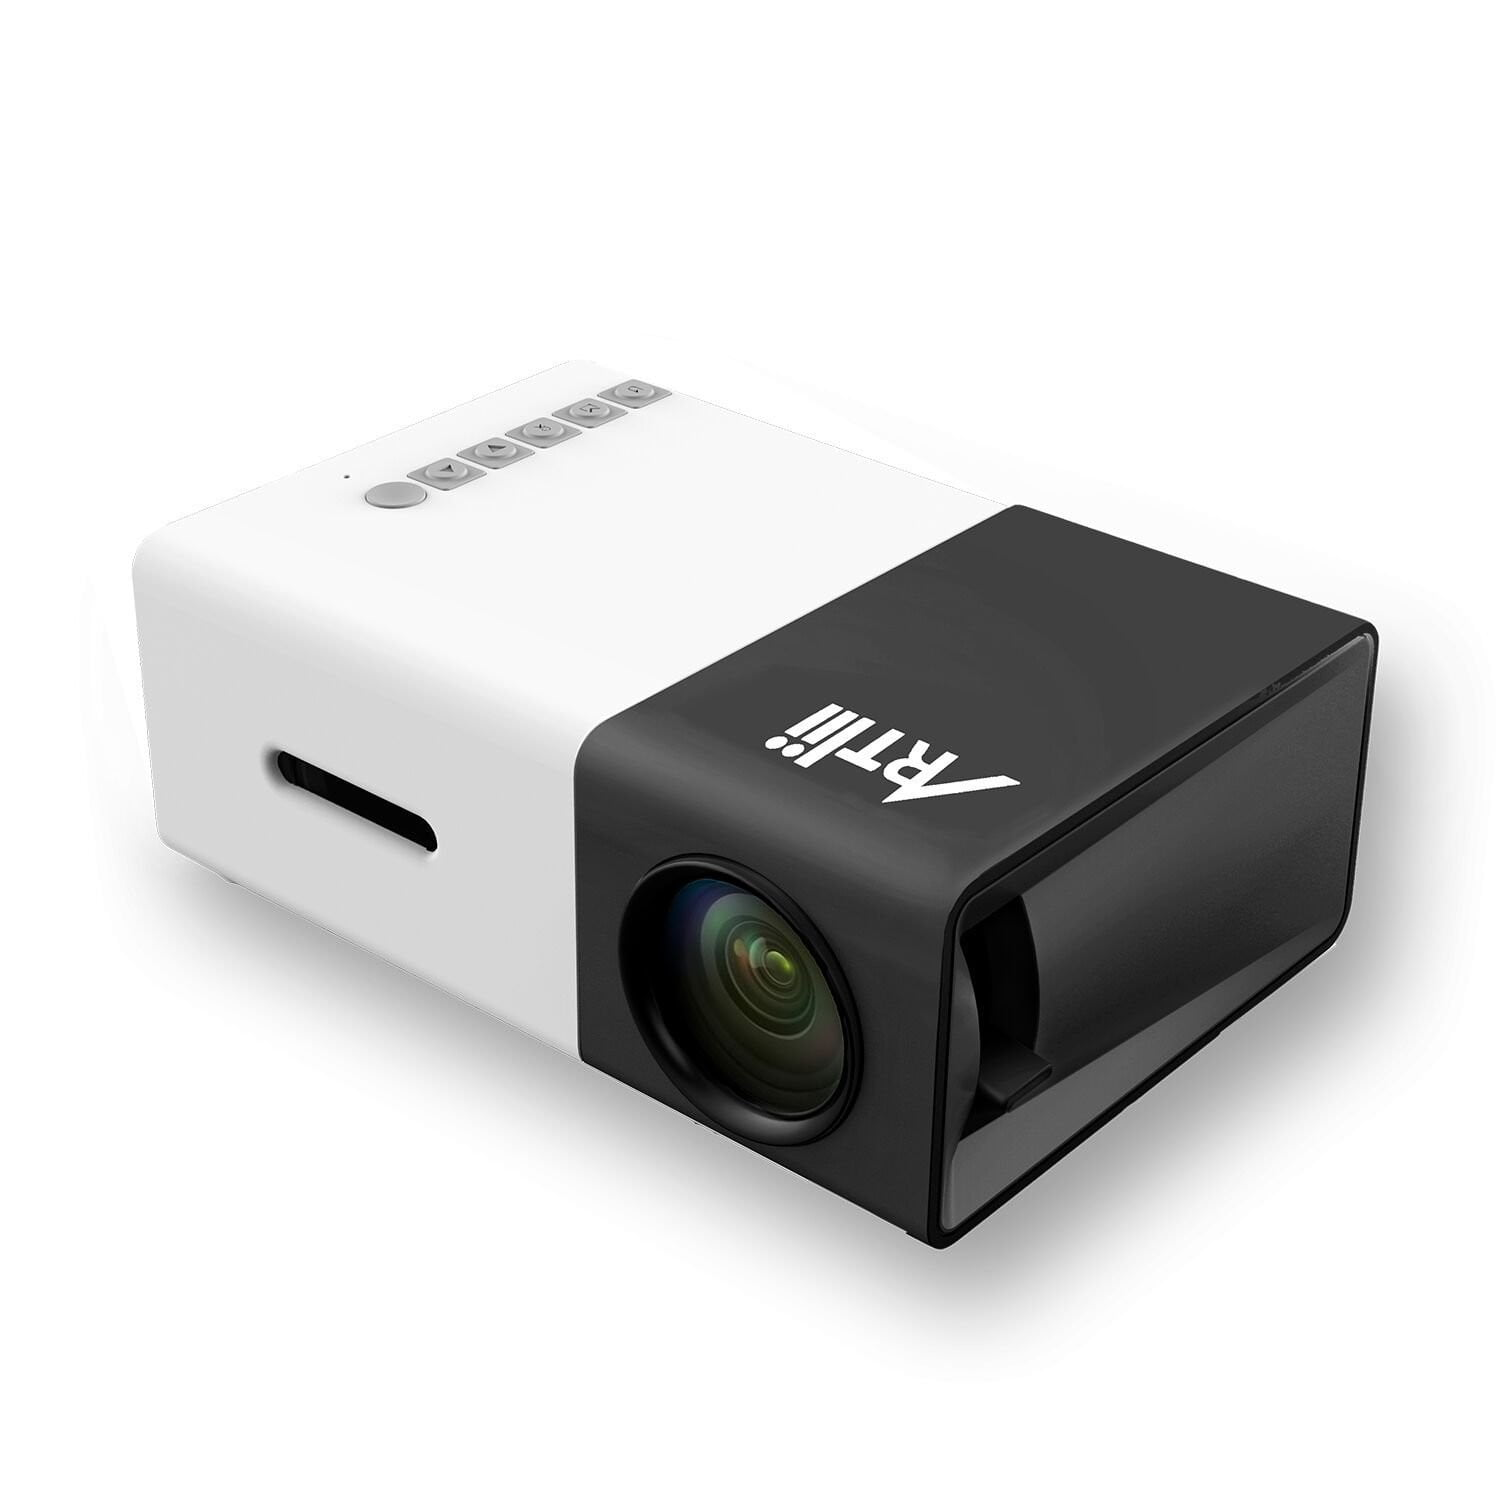 Artlii portable mini video projector digital trends for Mini portable video projector